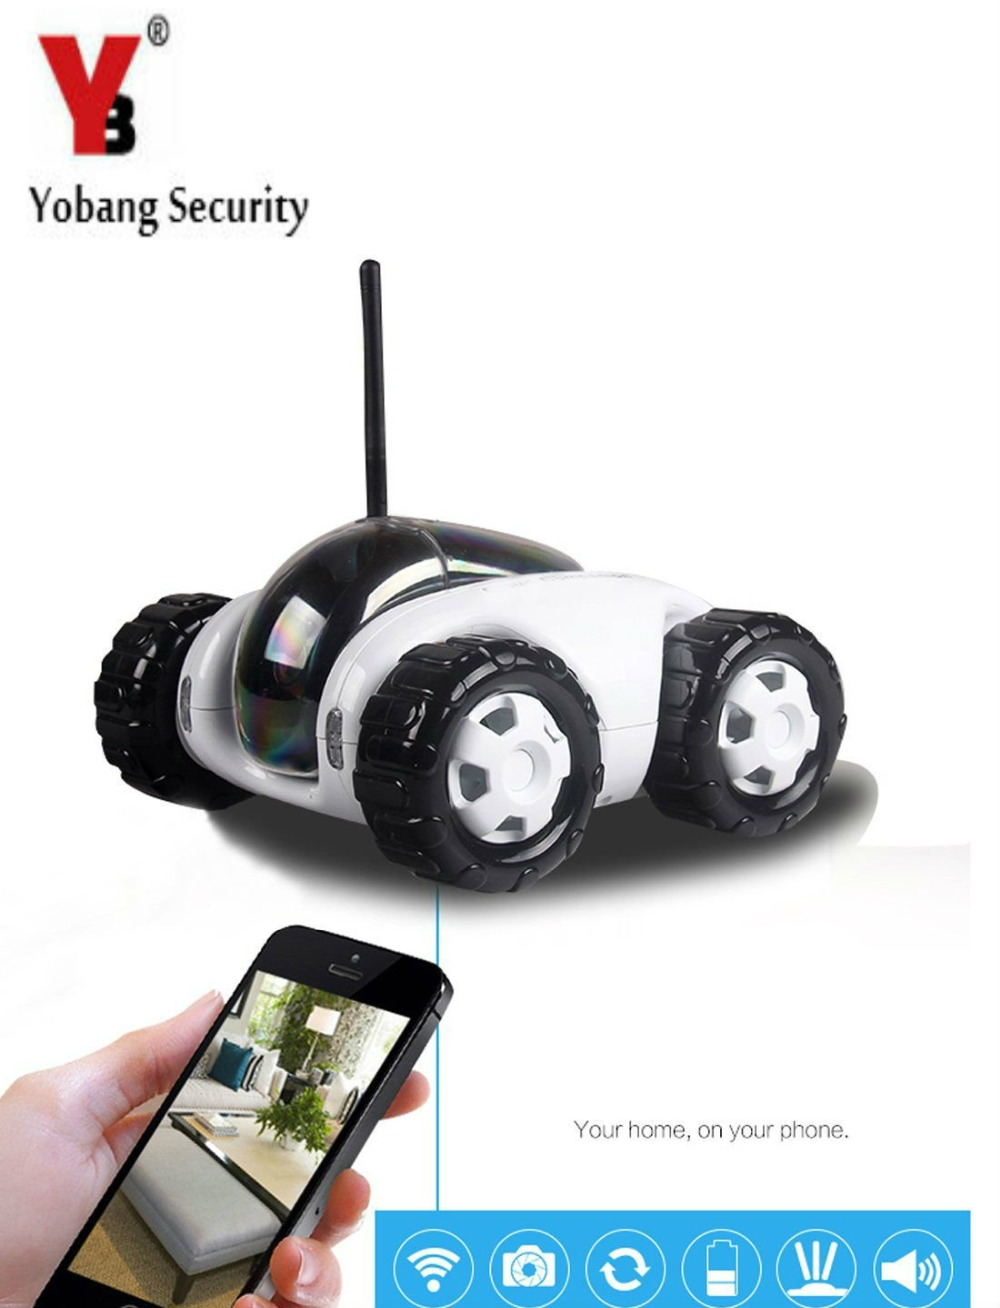 YobangSecurity wireless charger WiFi remote camera video Night Vision mobile 3MP IP Camera Smart Phone remote control tank car  wireless charger wifi remote control car with fpv camera infrared night vision camera video toy car tanks real time video call